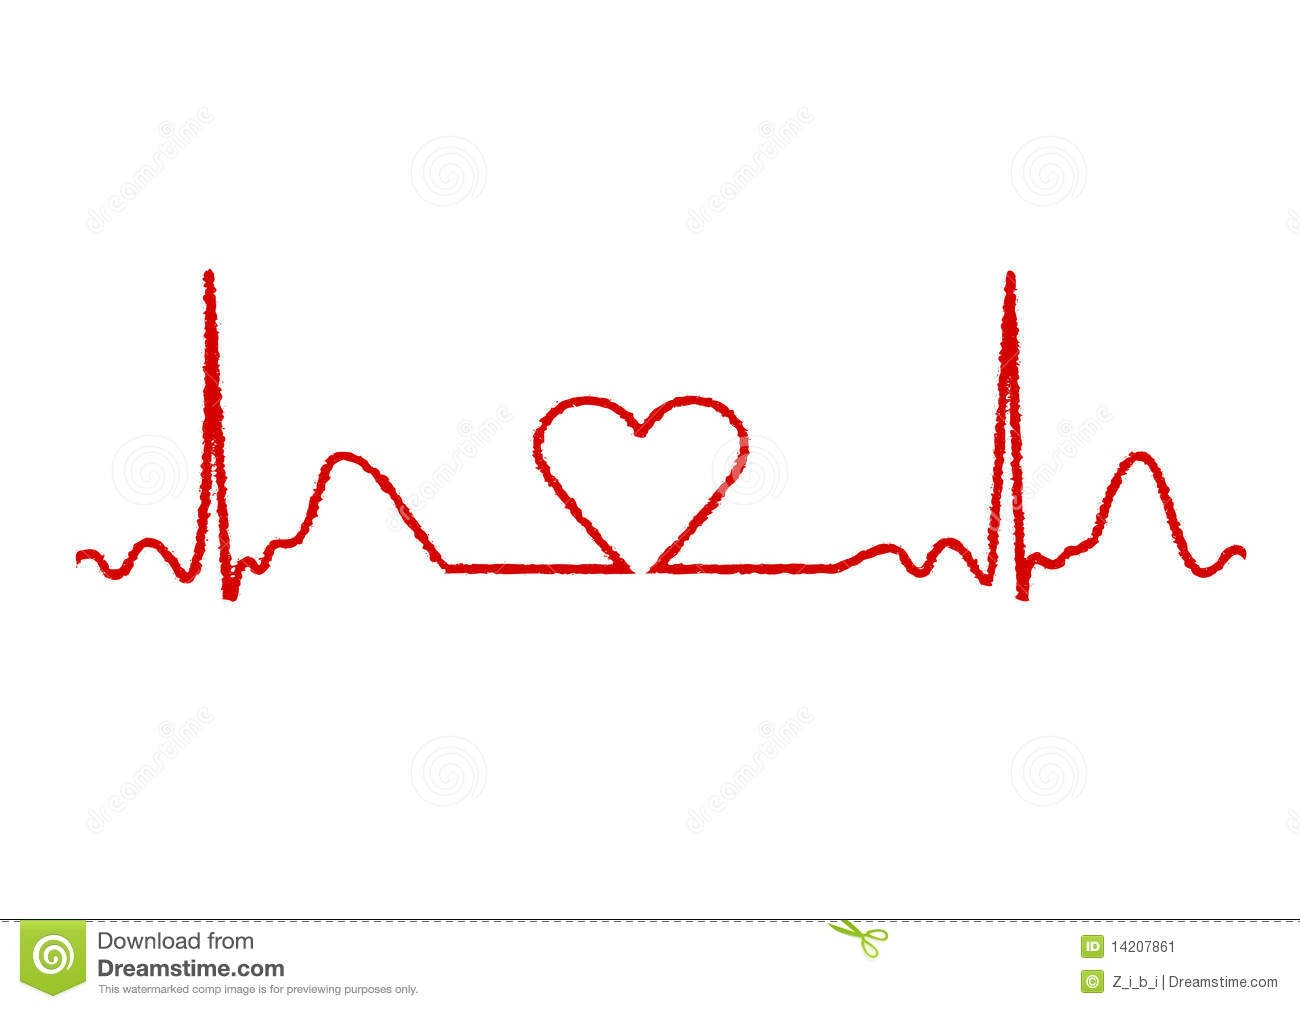 Lines clipart heart rate Line Heart Clipart Clipart Line